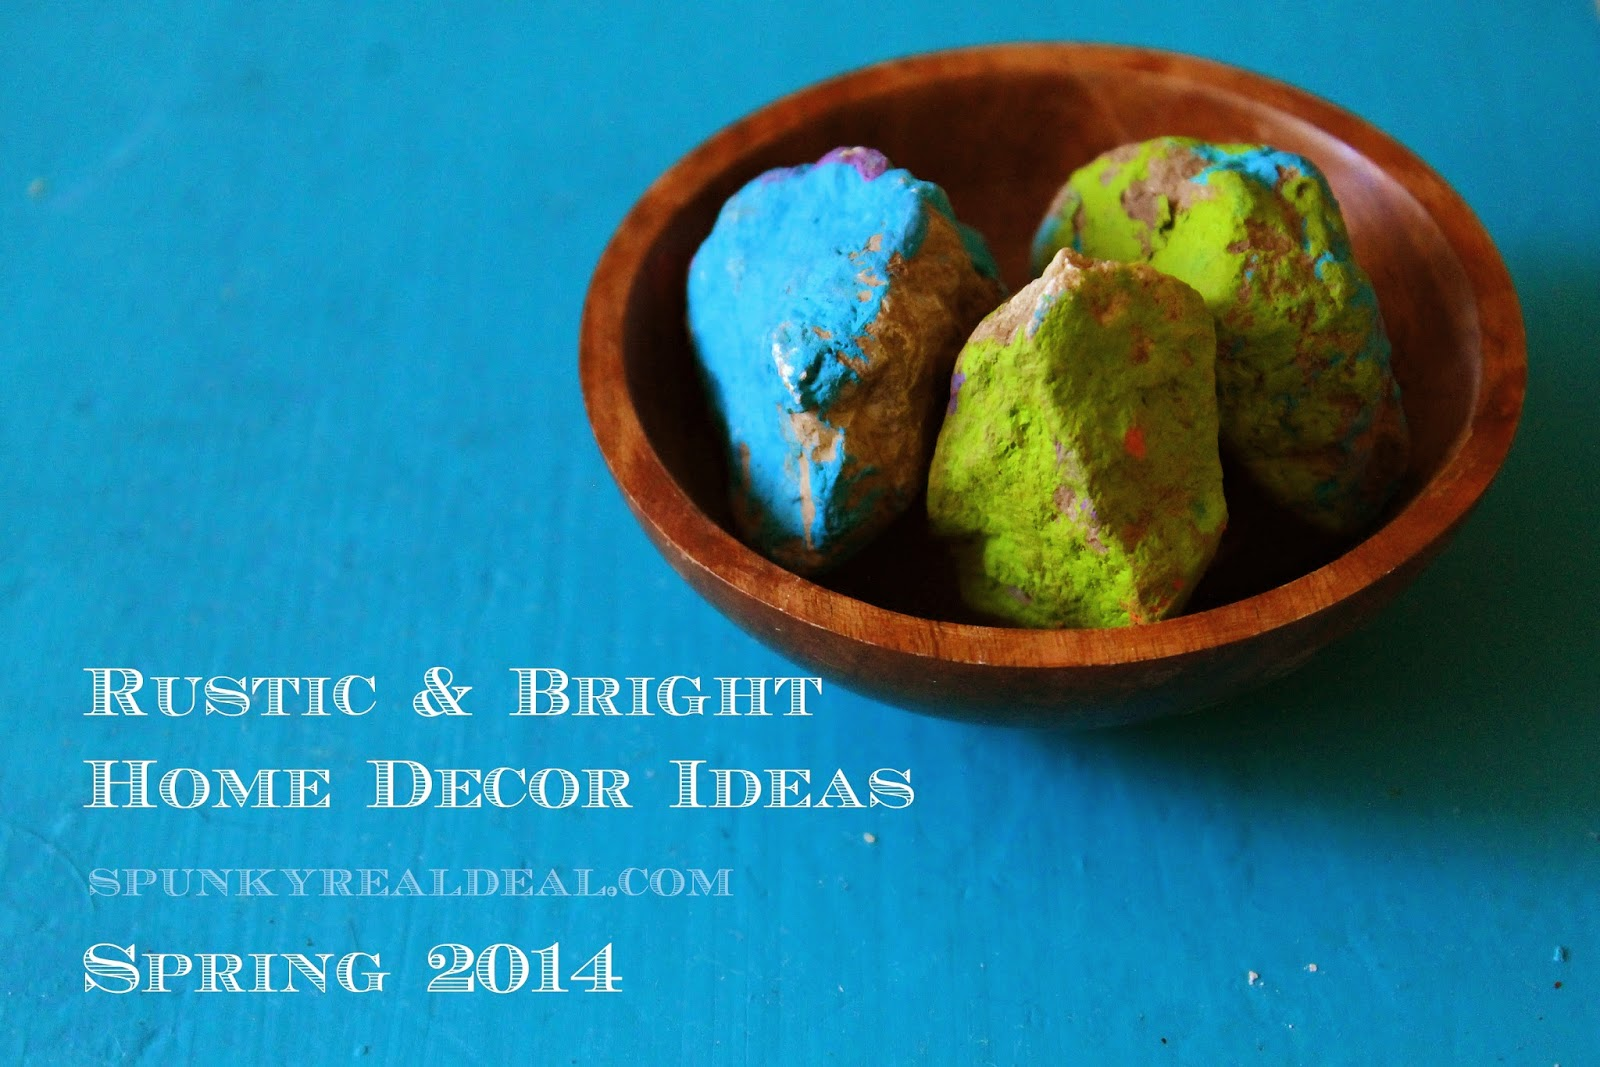 Rustic & Bright Home Decor: Painted Rocks